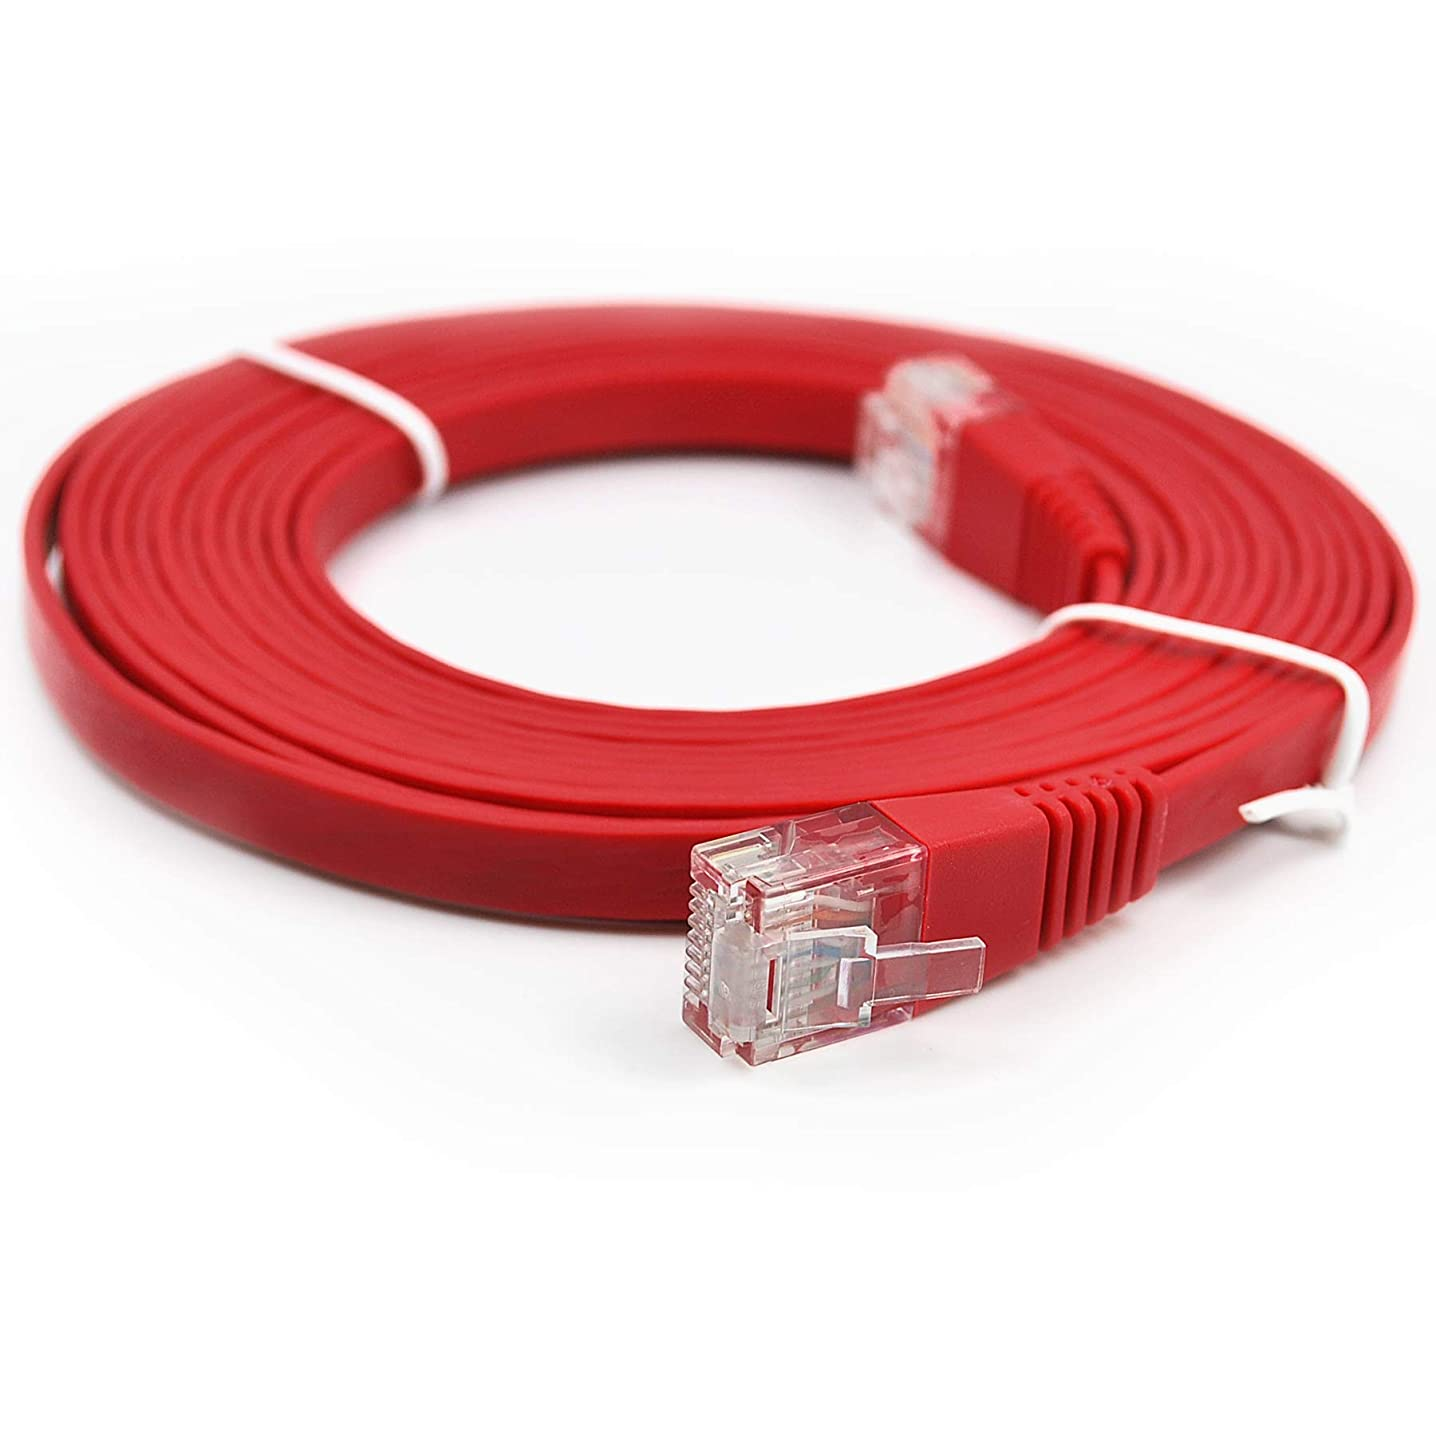 Piertelecom-Ethernet Patch Cable CAT6 LAN Flat Network Cable High Speed (10ft/red/10 Pack)